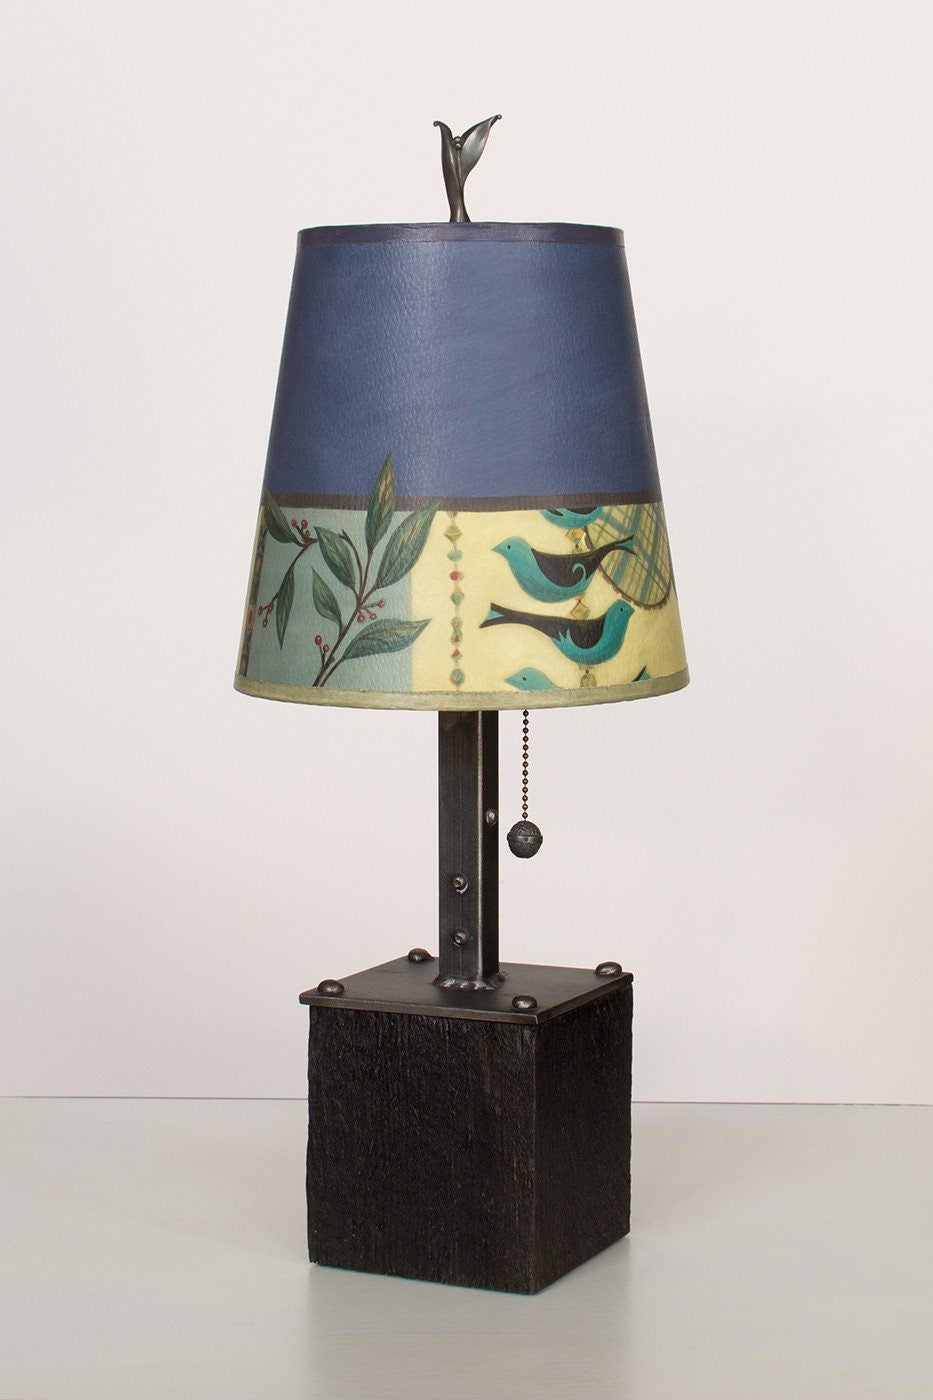 Steel Table Lamp on Reclaimed Wood with Small Drum Shade in New Capri Periwinkle Lit